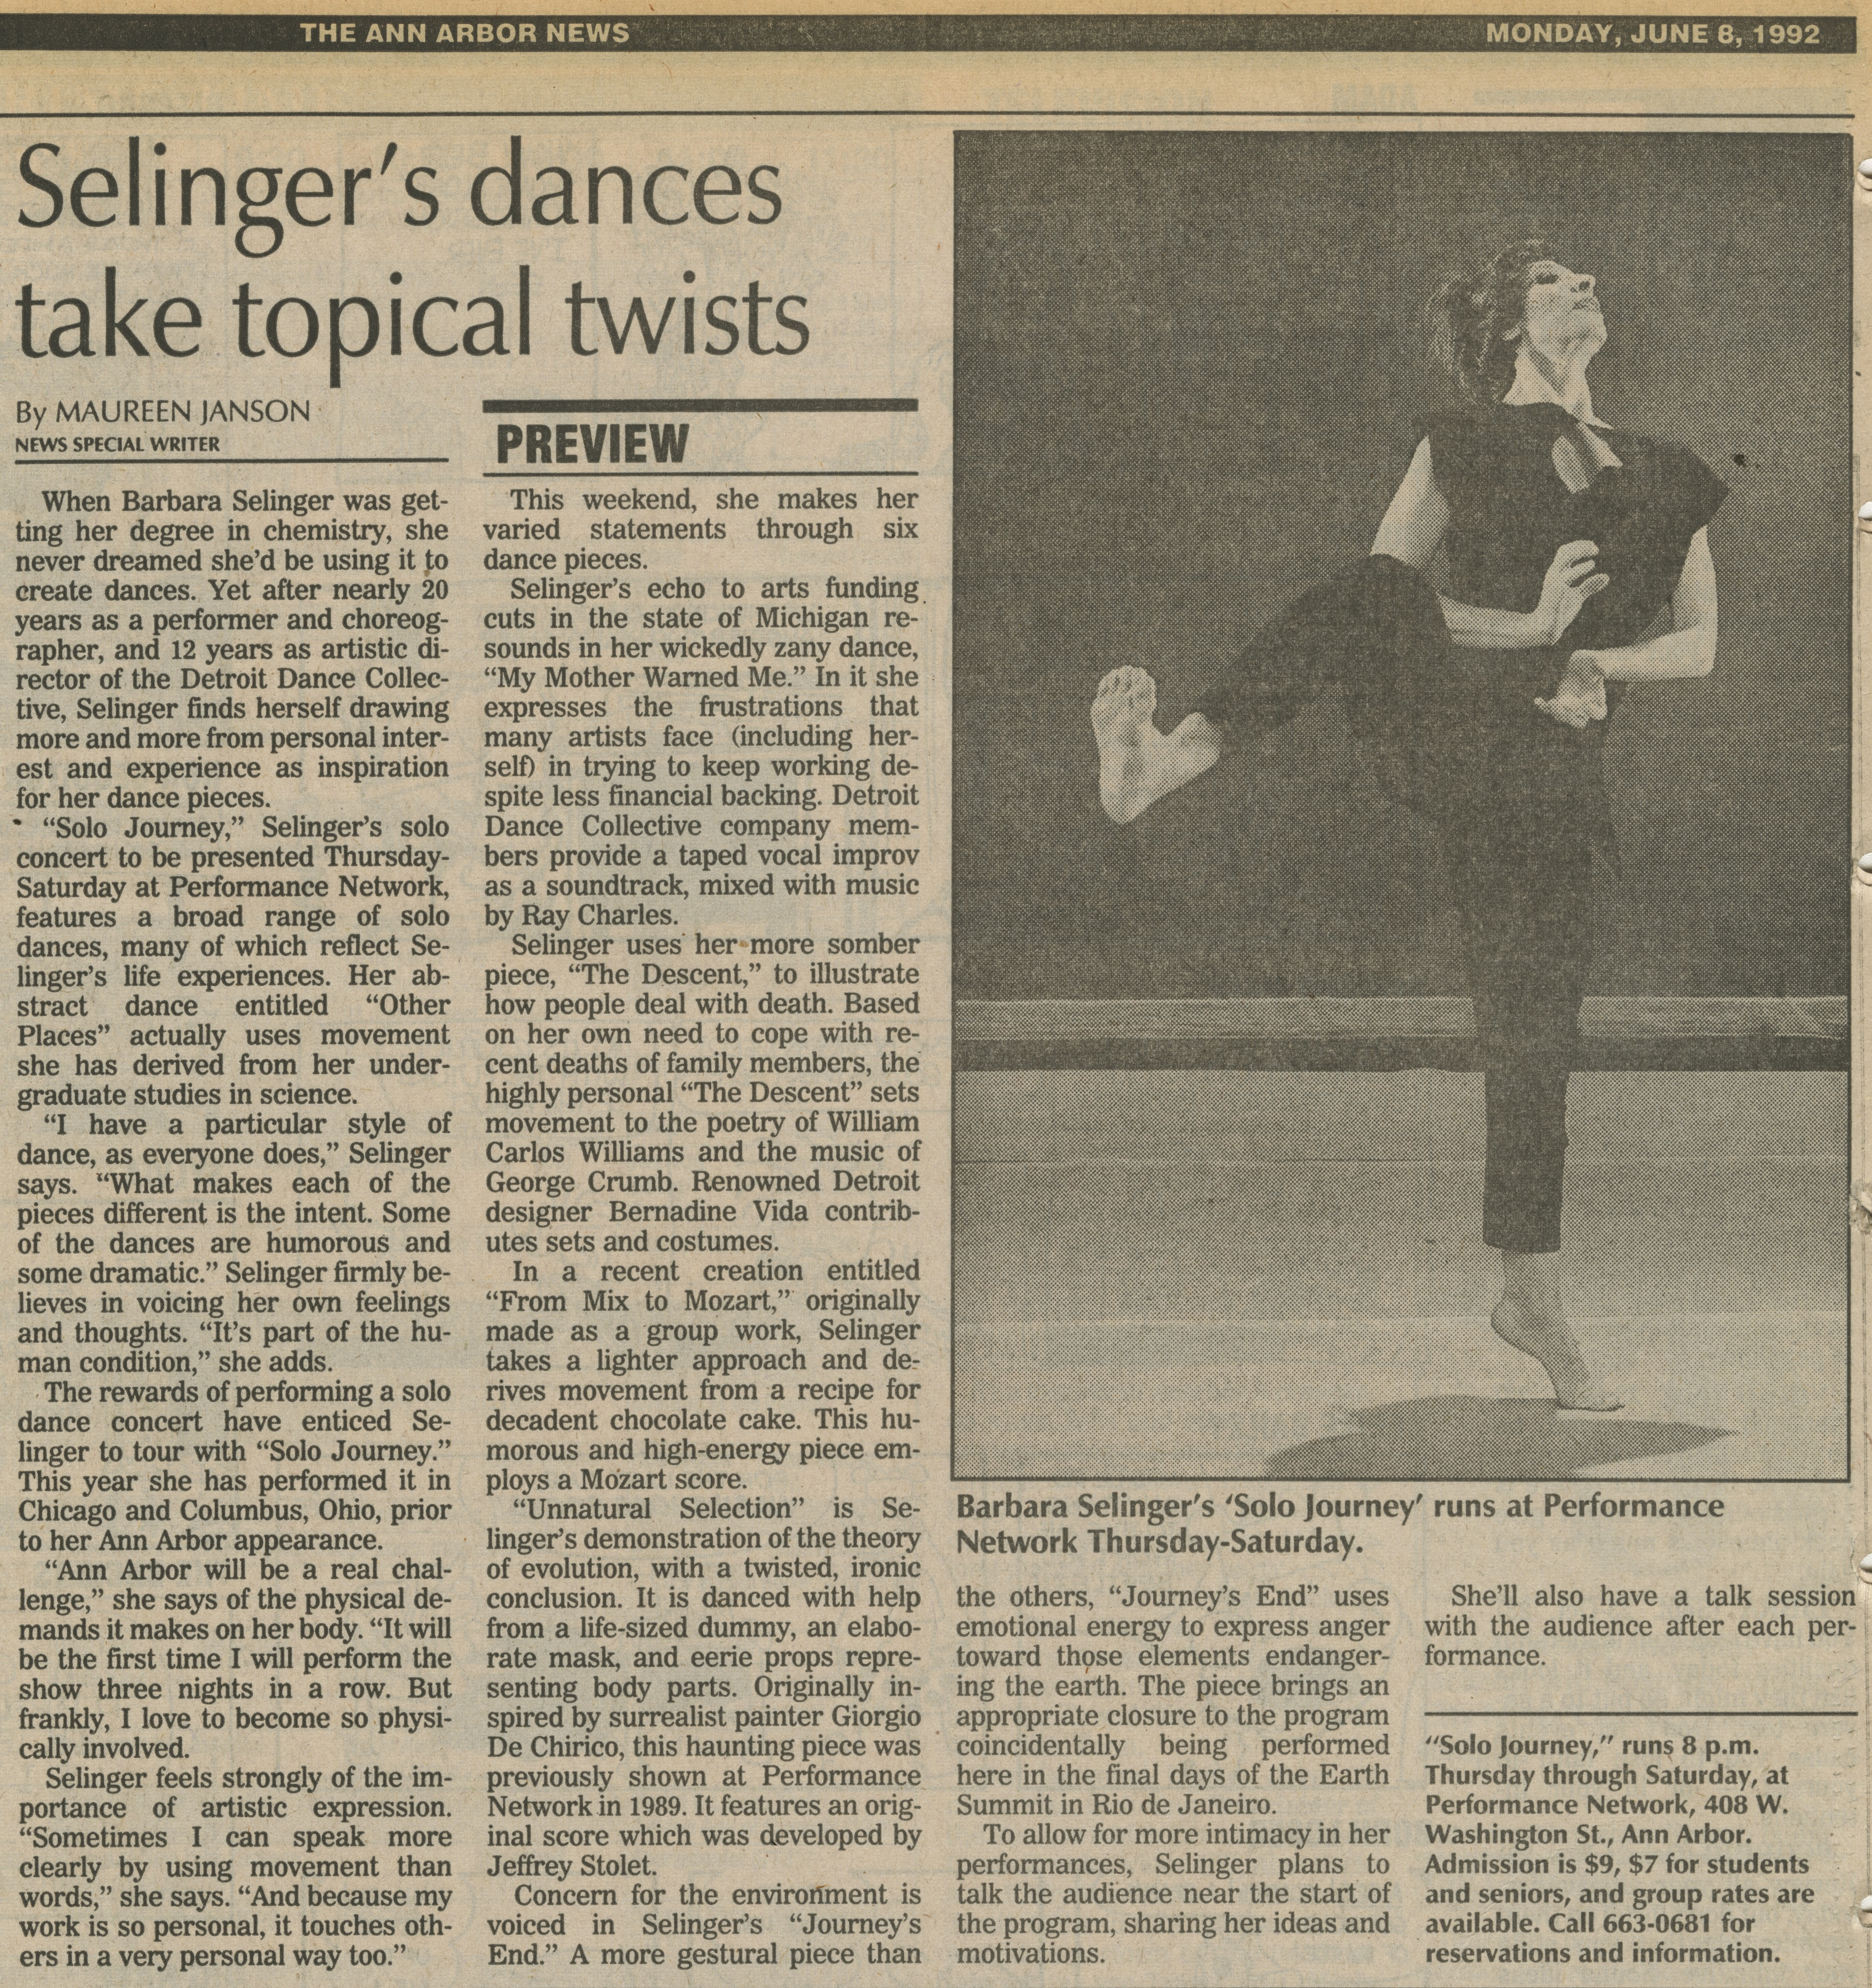 Selinger's dances take topical twists image